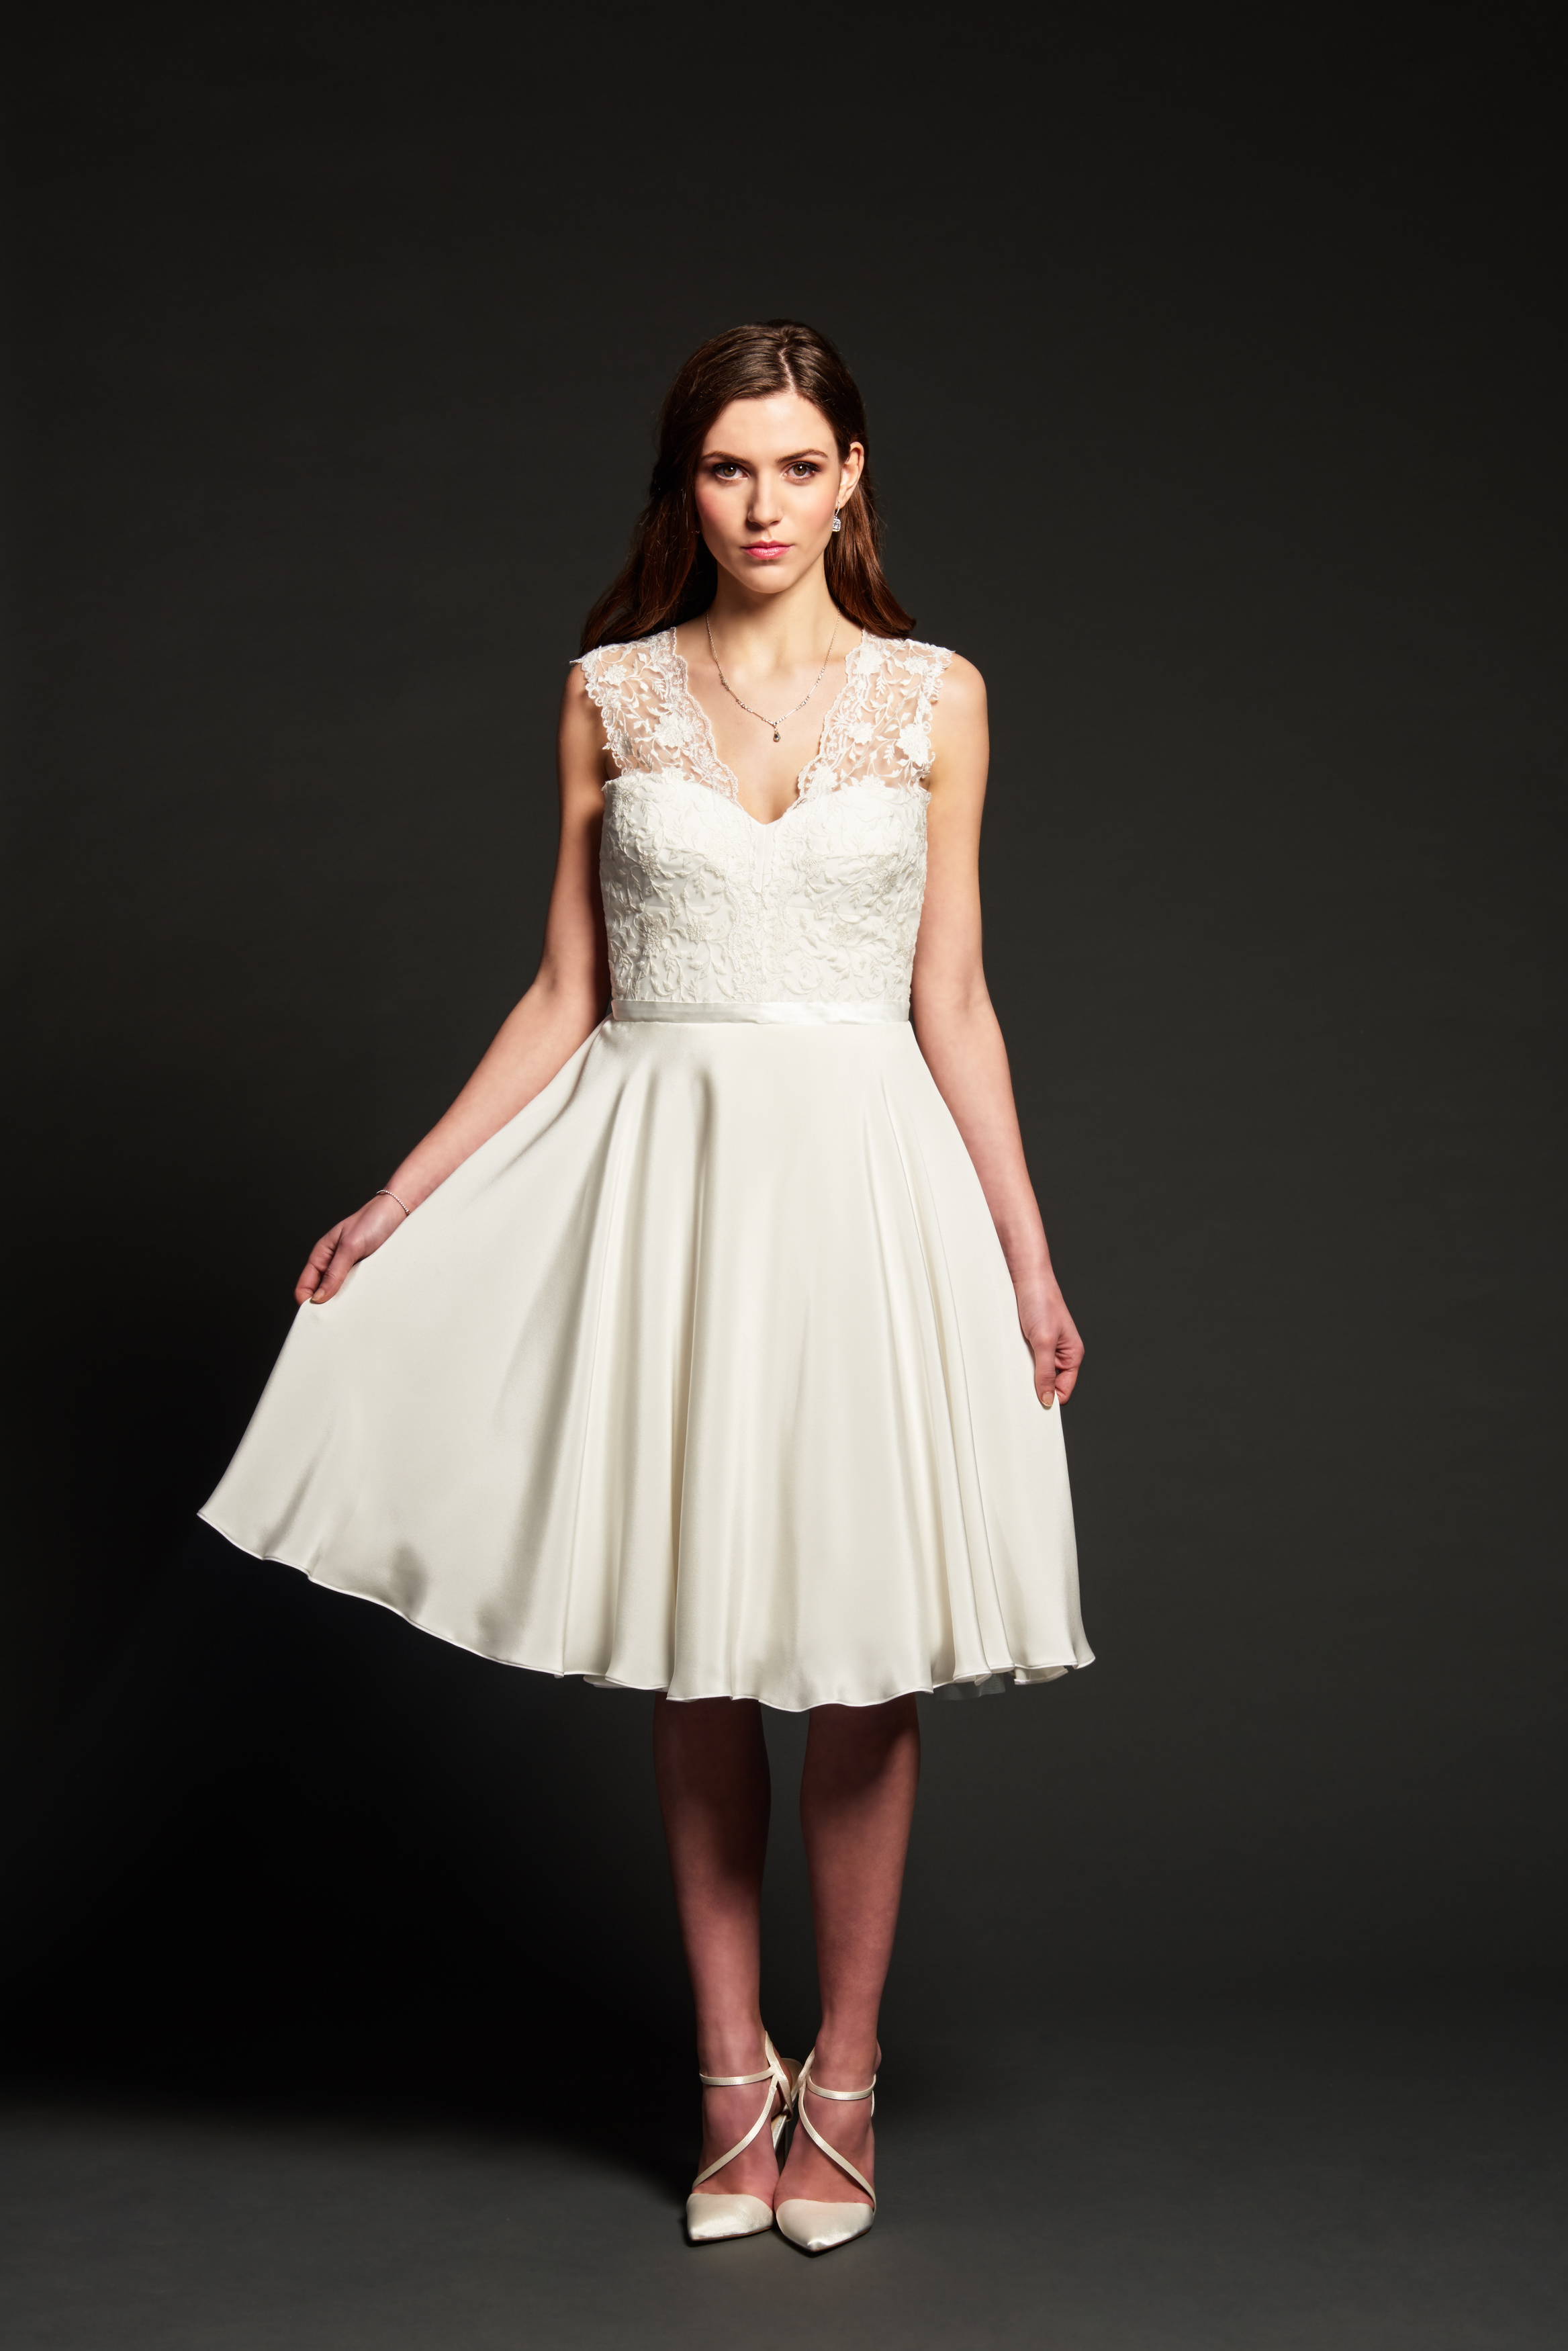 160213_GEMMA LEAKEY BRIDAL - DRESS 02-01.jpg